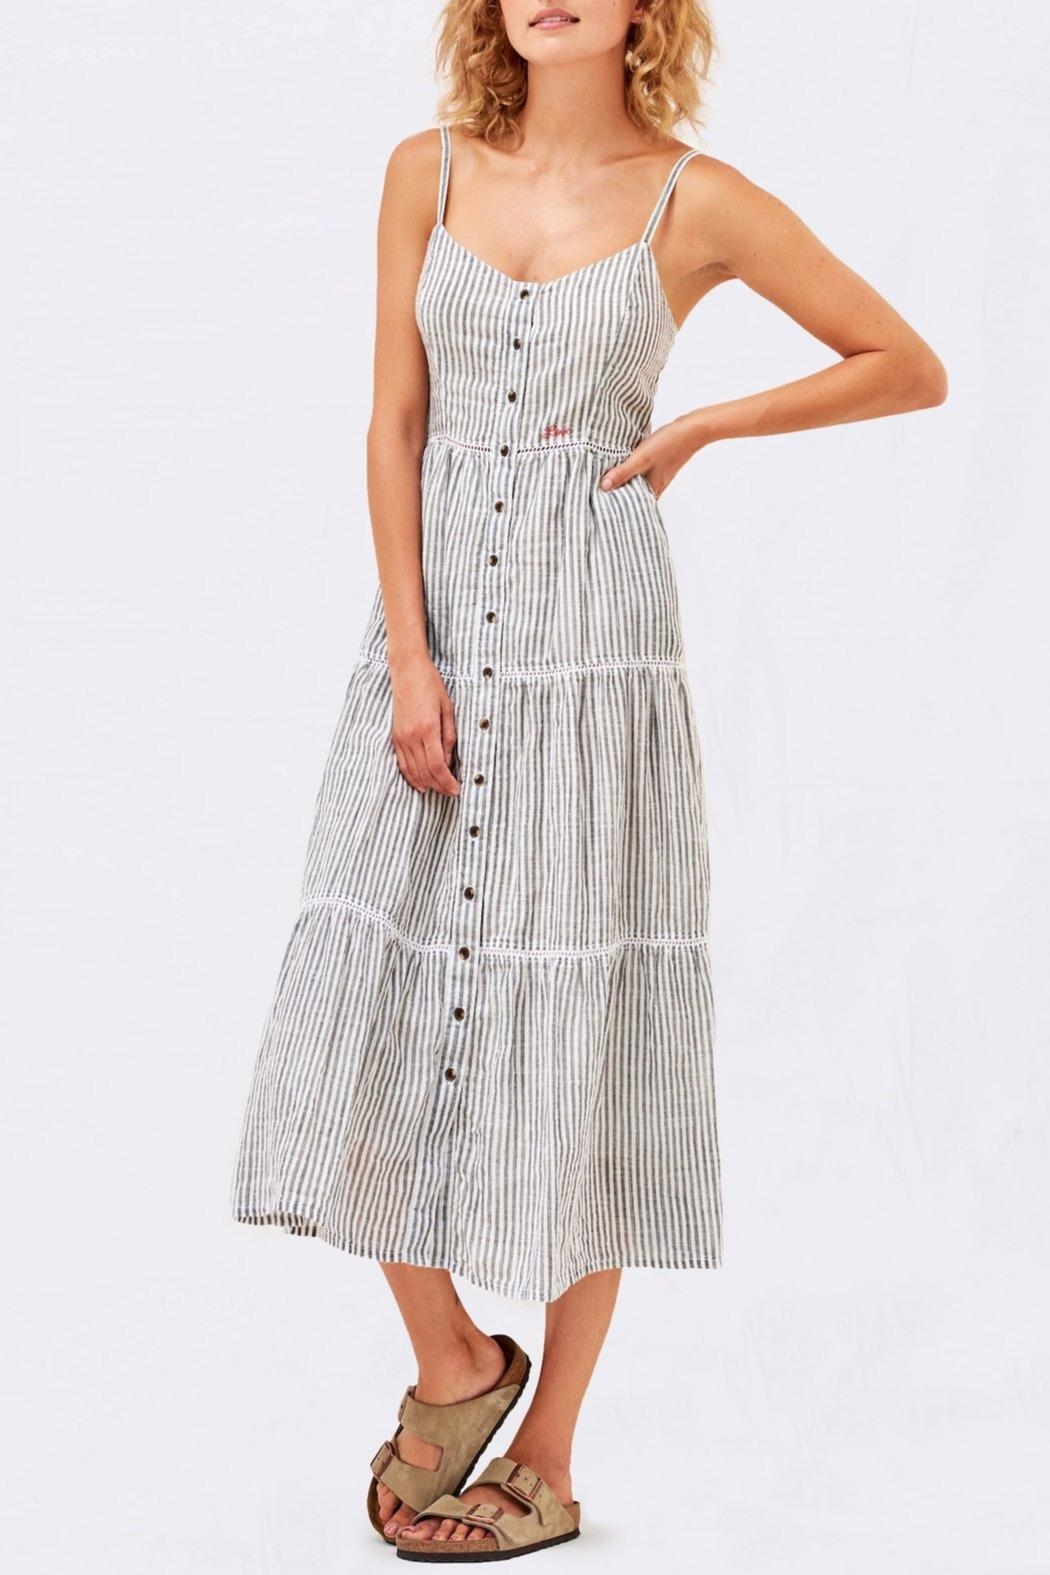 Sundry Love Tiered Sundress - Front Full Image